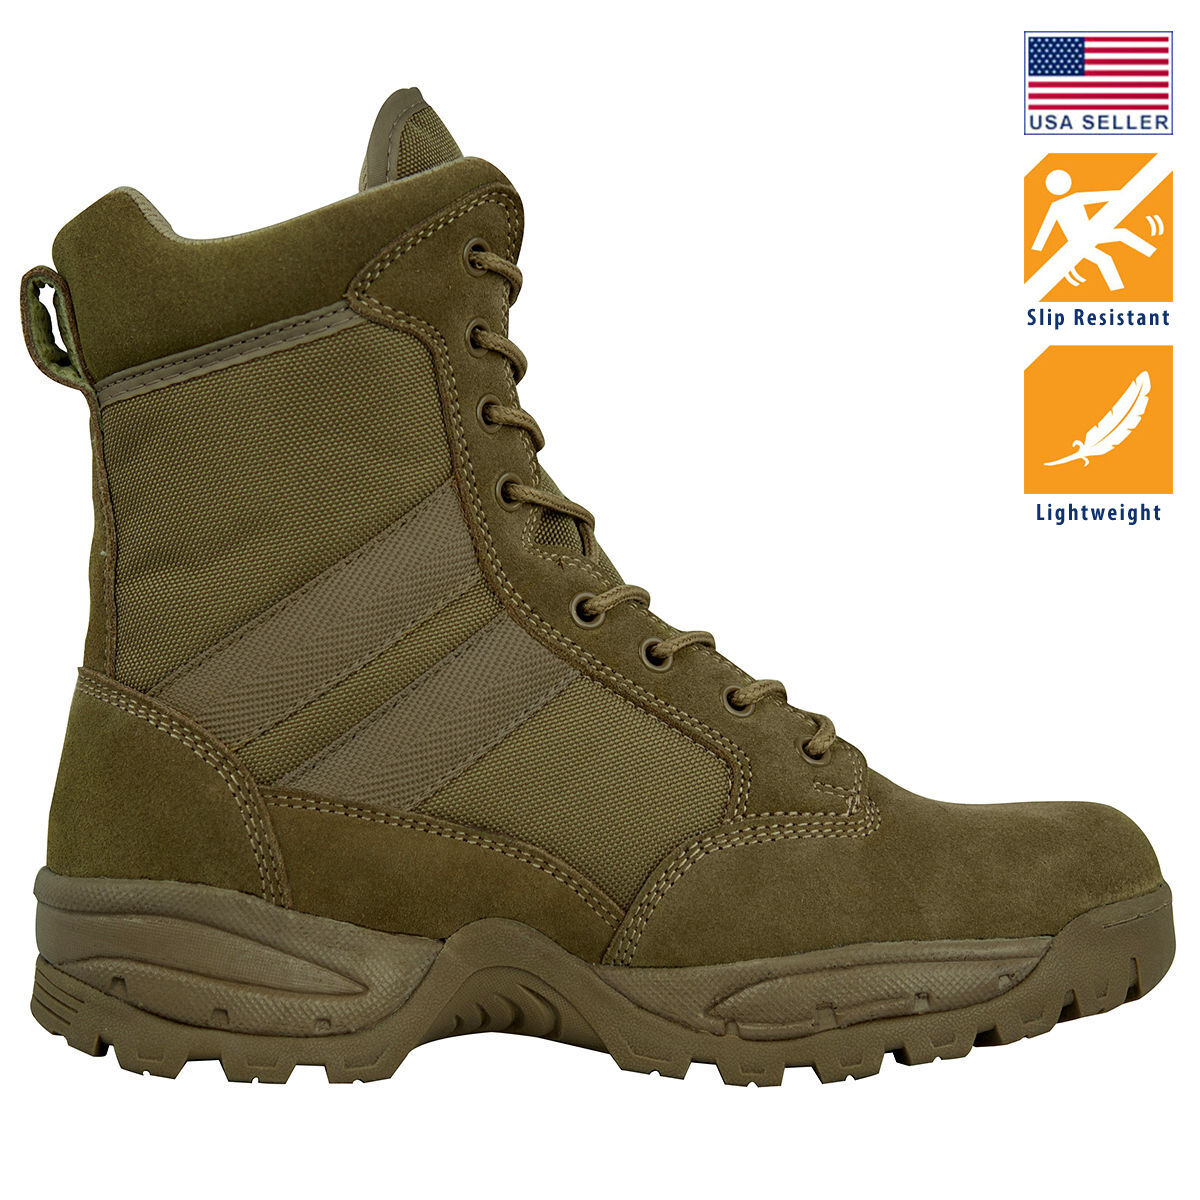 Boots - Maelstrom® TAC FORCE 8'' Coyote Brown Military Tactical Work Boots